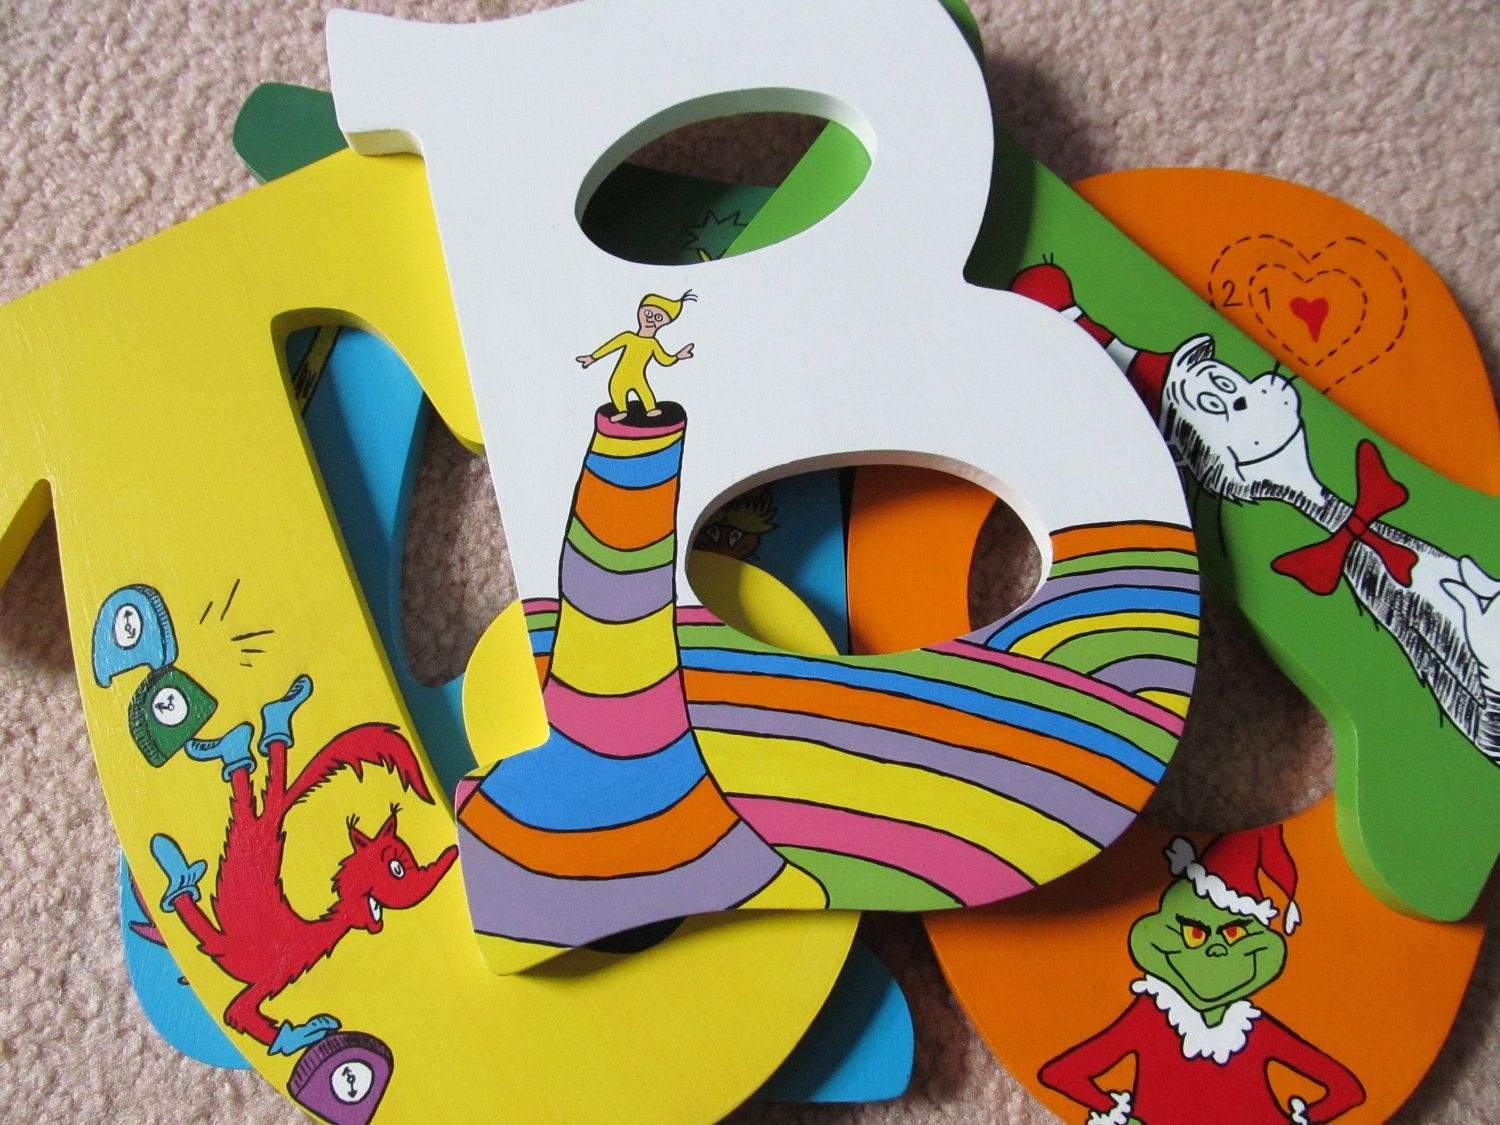 Dr. Seuss Hand-Painted Wooden Letters For Play Room Or